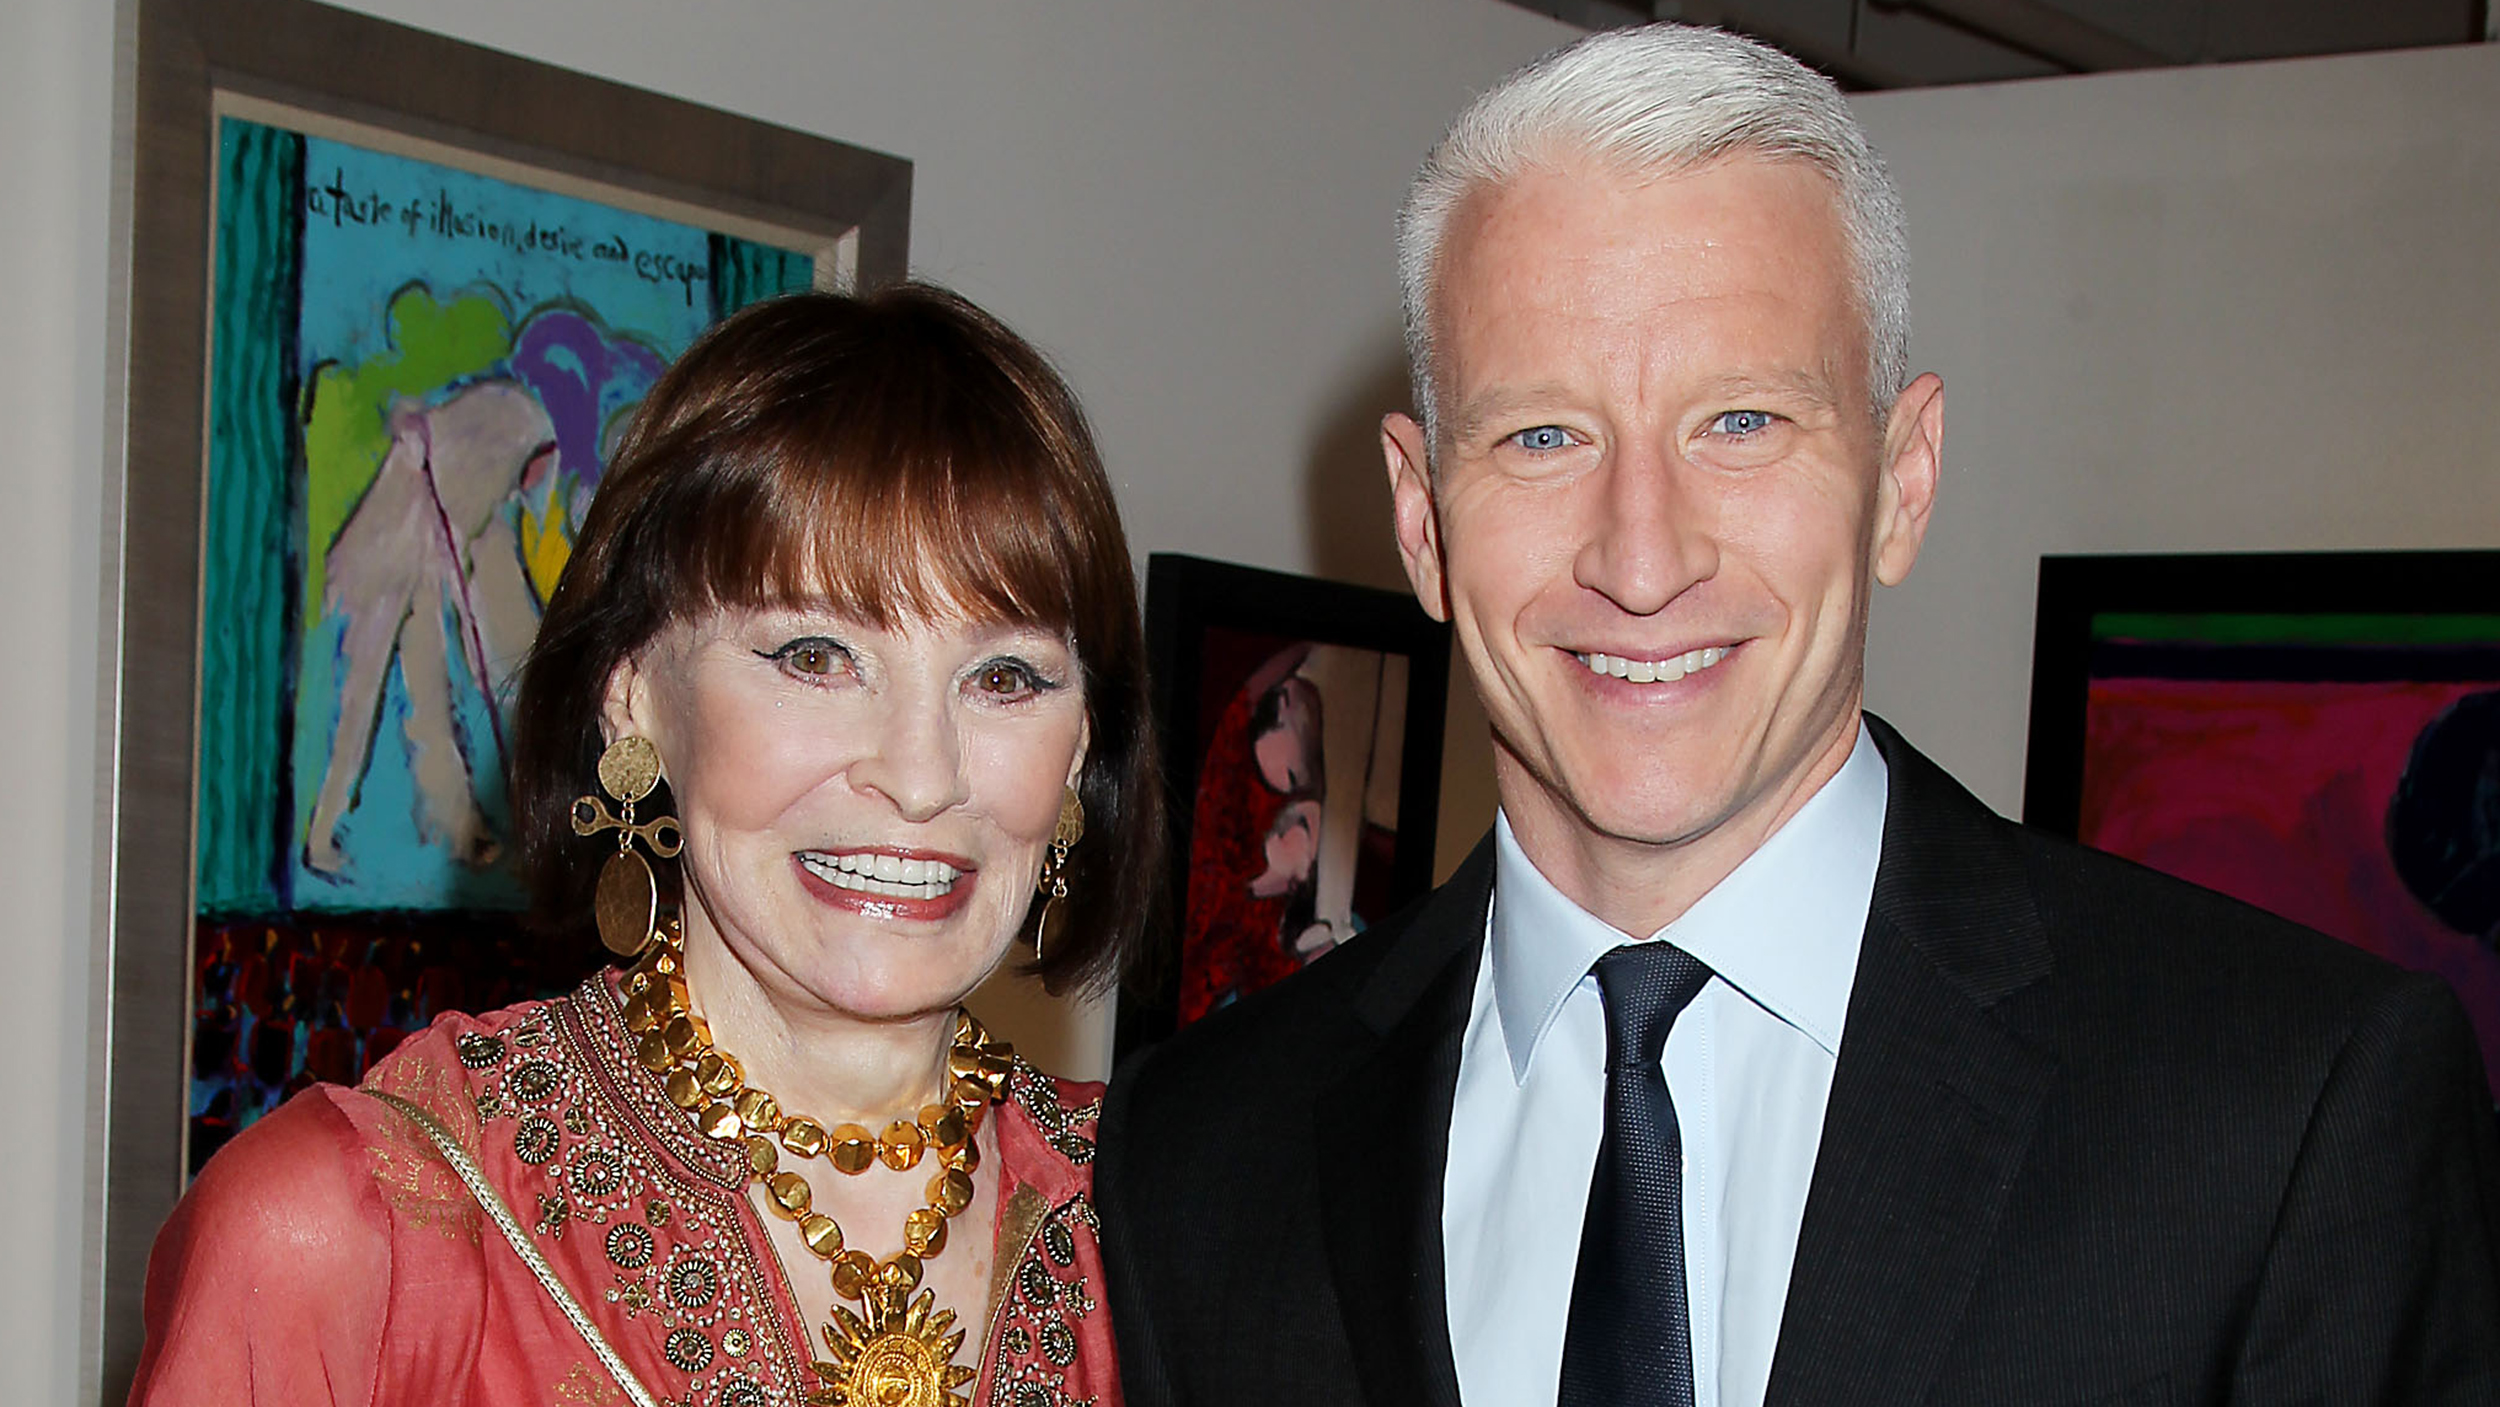 anderson cooper mom - photo #8